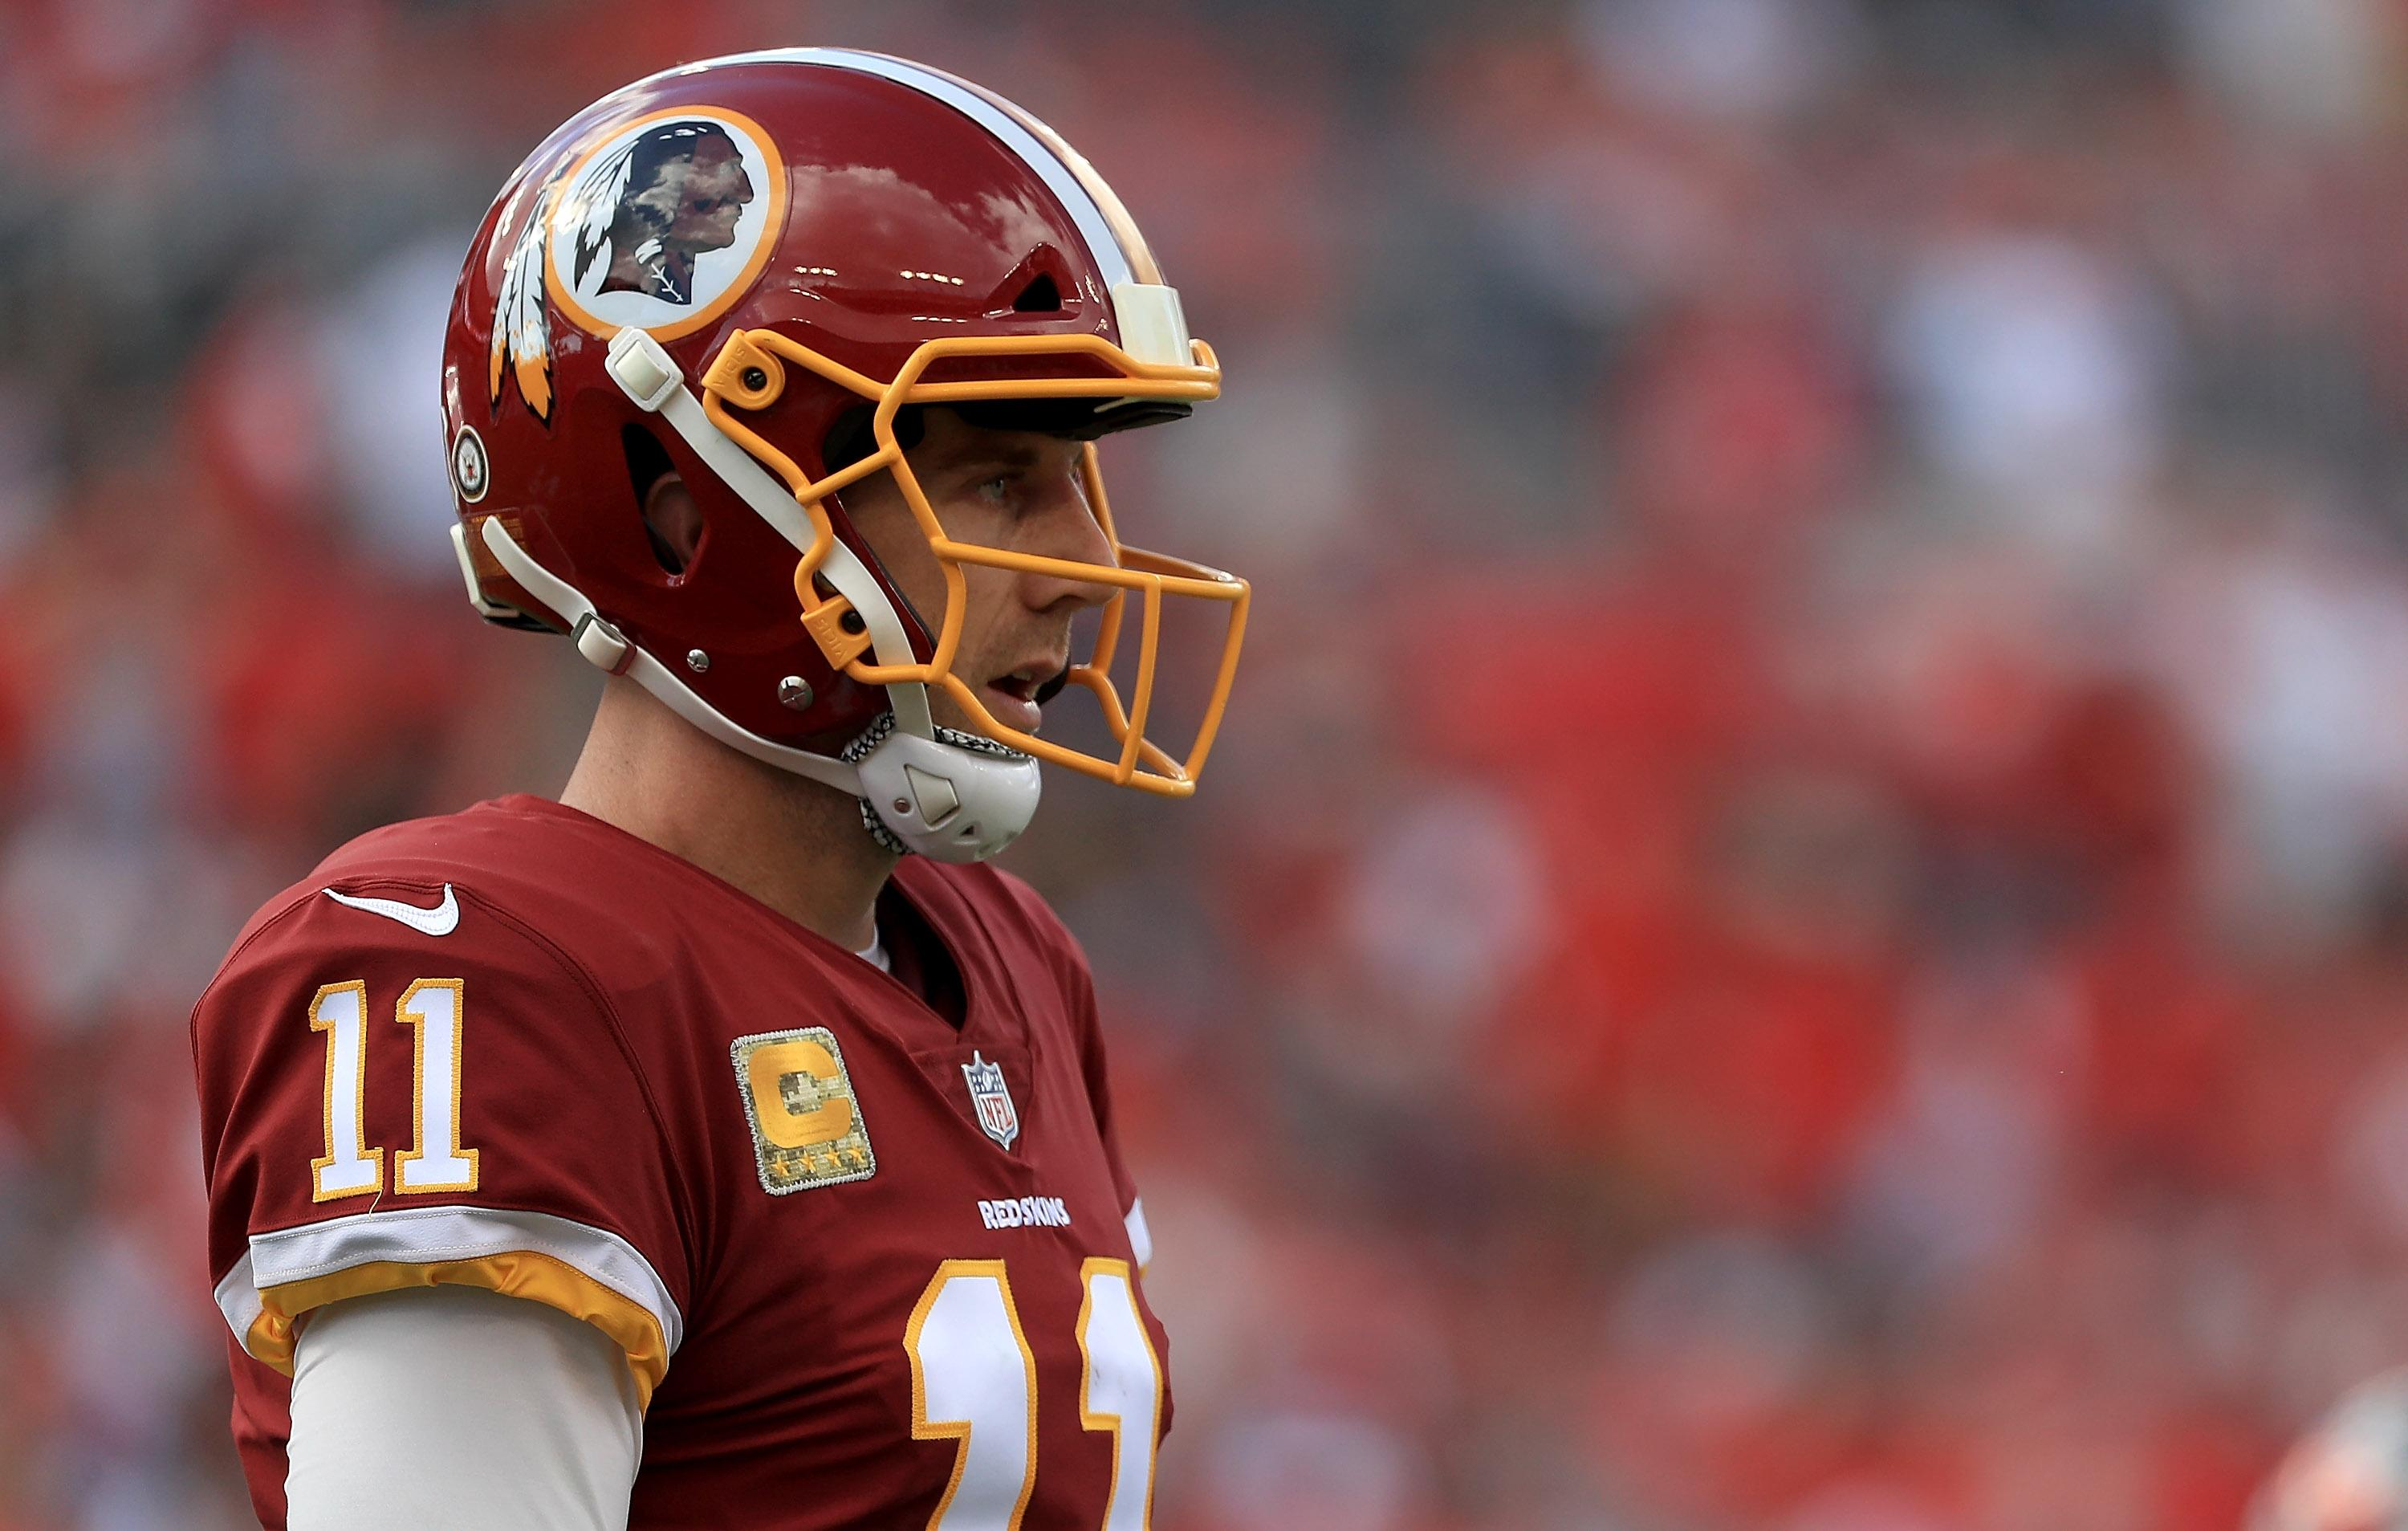 Joe Theismann feels Alex Smith's pain